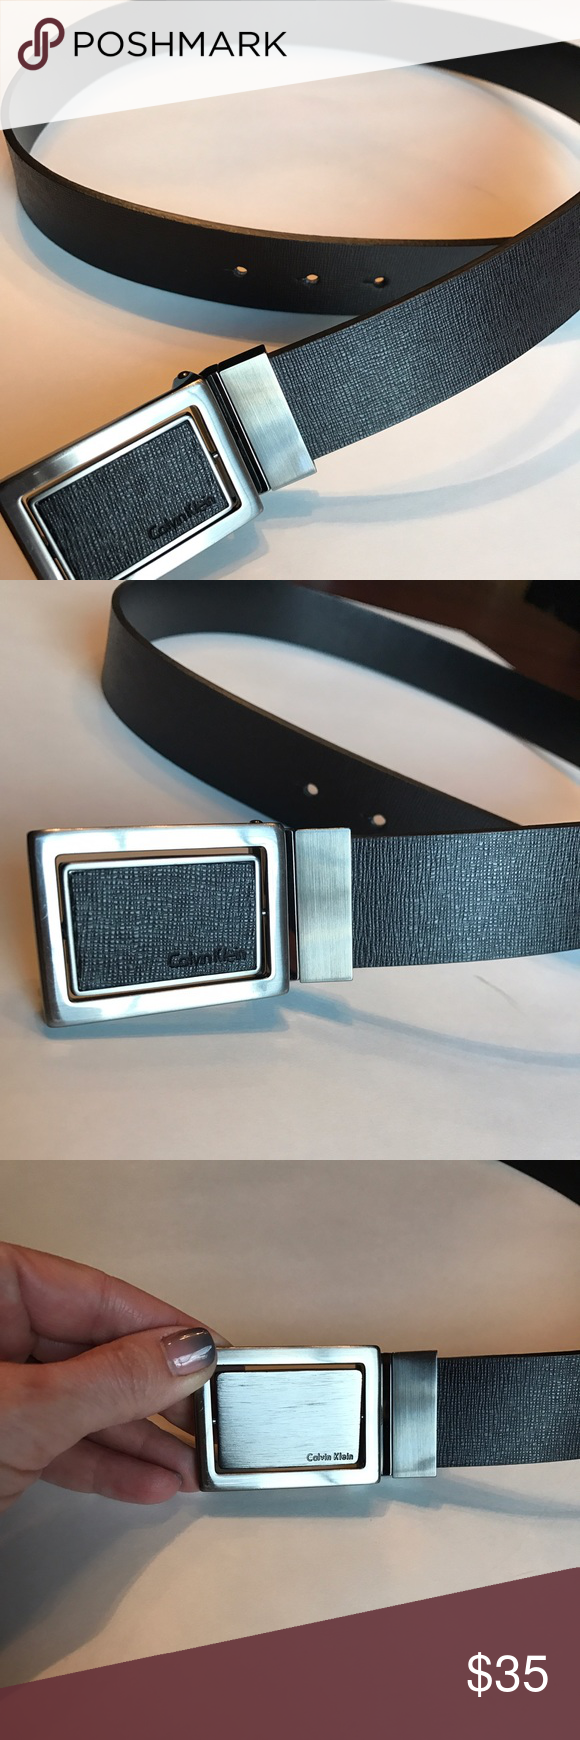 """Calvin Klein men's reversible buckle belt This men's belt from Calvin Klein is 44"""" in length. Color is a very dark brown with a gorgeous texture. The buckle is reversible - one side is textured like the belt, and the order side is a brushed metal. Like new! Calvin Klein Accessories Belts"""